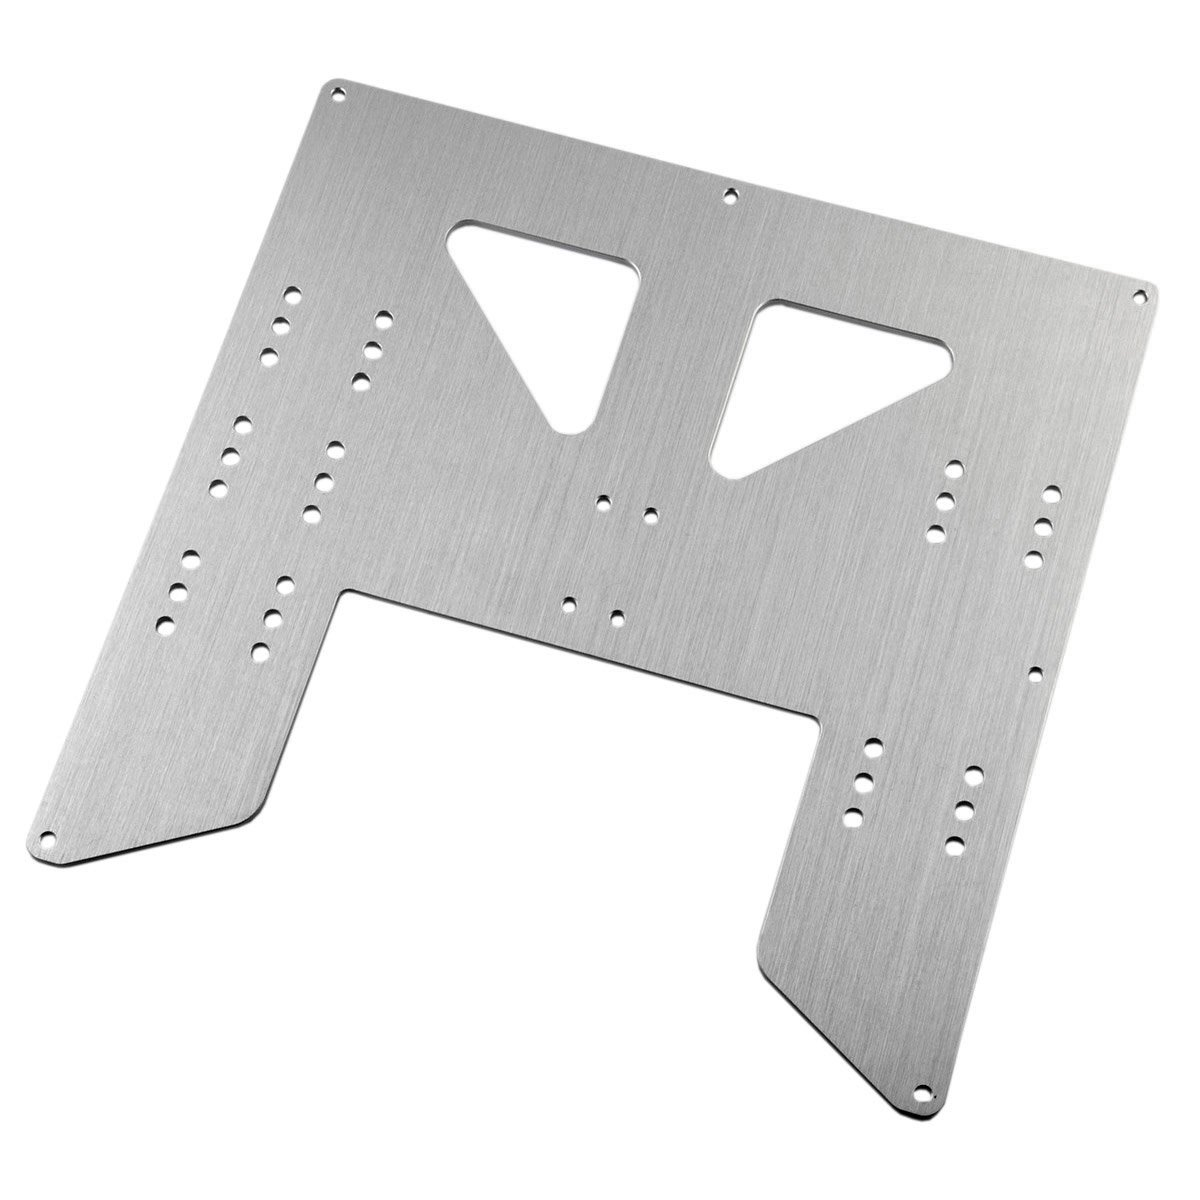 [Gulfcoast Robotics] Aluminum Y Carriage Plate Upgrade for Anet A8 3D Printer